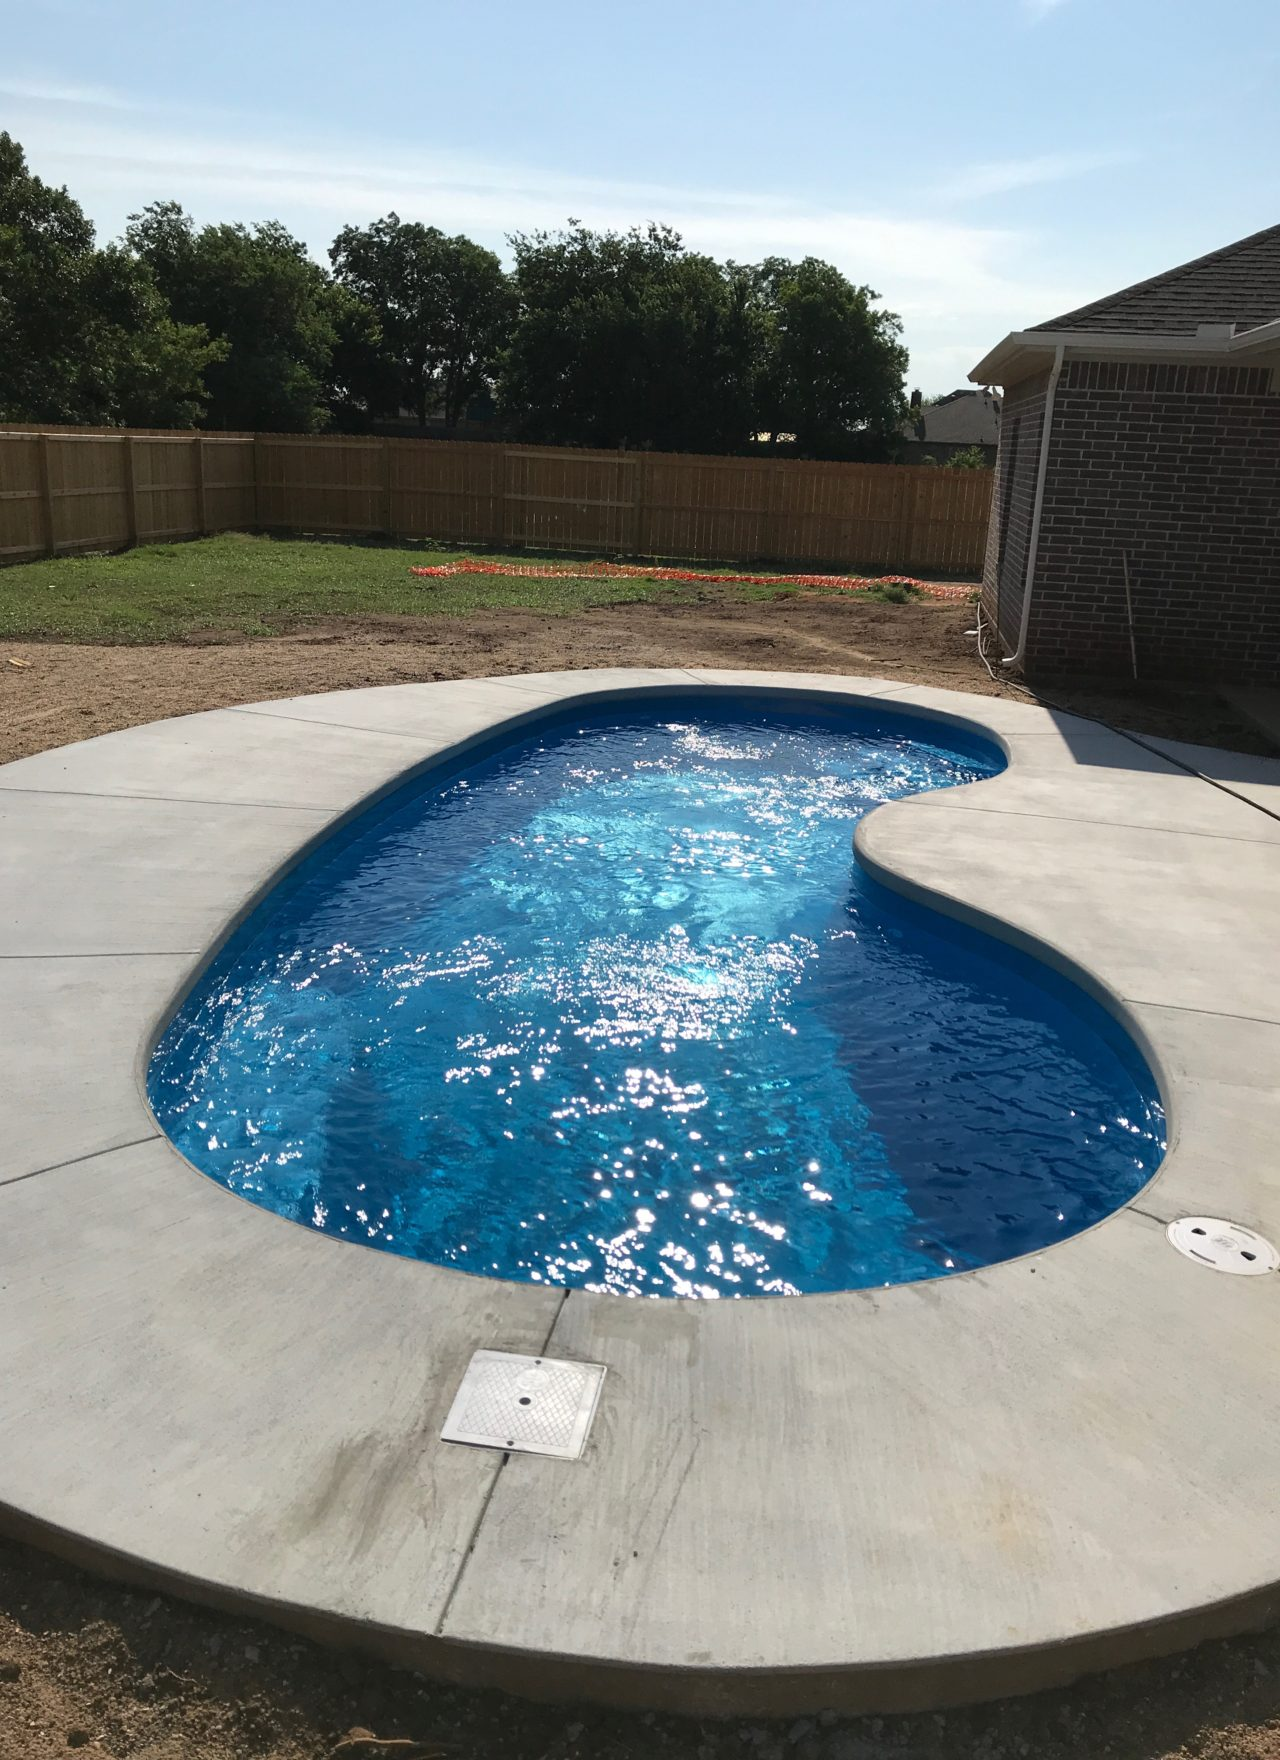 The Tioga Job – Seaside Pool With a Poured Concrete Deck